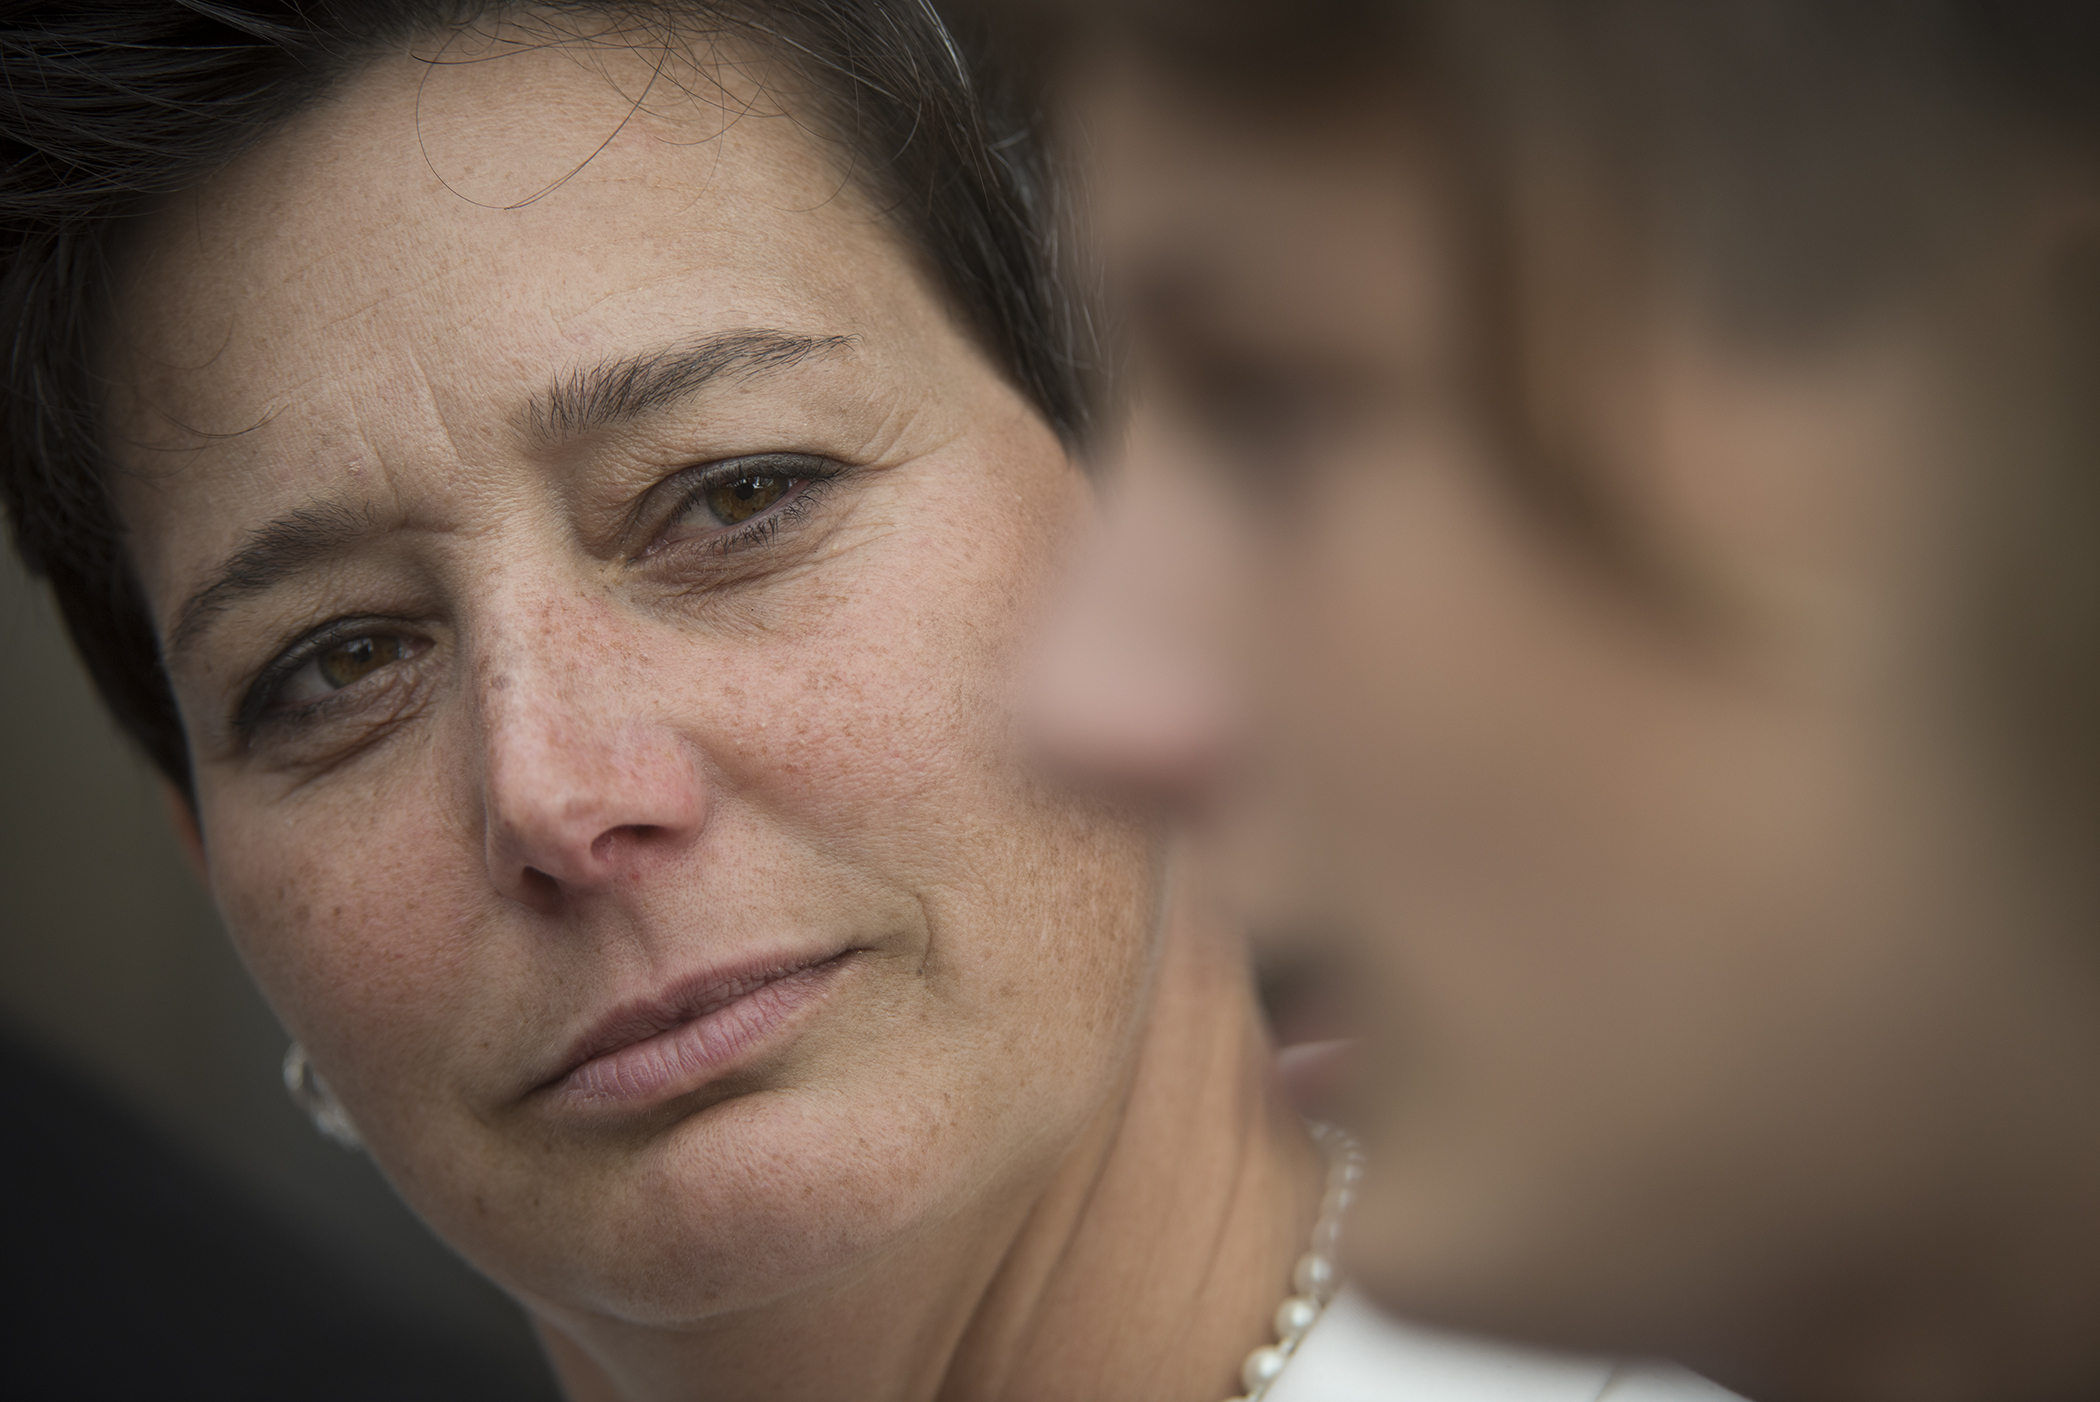 Jacquelyn Jamason watches her son, Ethan, speak to reporters at the Palm Beach County Courthouse on Tuesday, September 26, 2017, in West Palm Beach, Fla. Circuit Judge Charles Burton sentenced Jamason's former partner, Kimberly Lucas, 43, to life in prison for killing the 2-year-old daughter she shared with Jamason, plus an additional 30 years for trying to poison their at-the-time 10-year-old son.